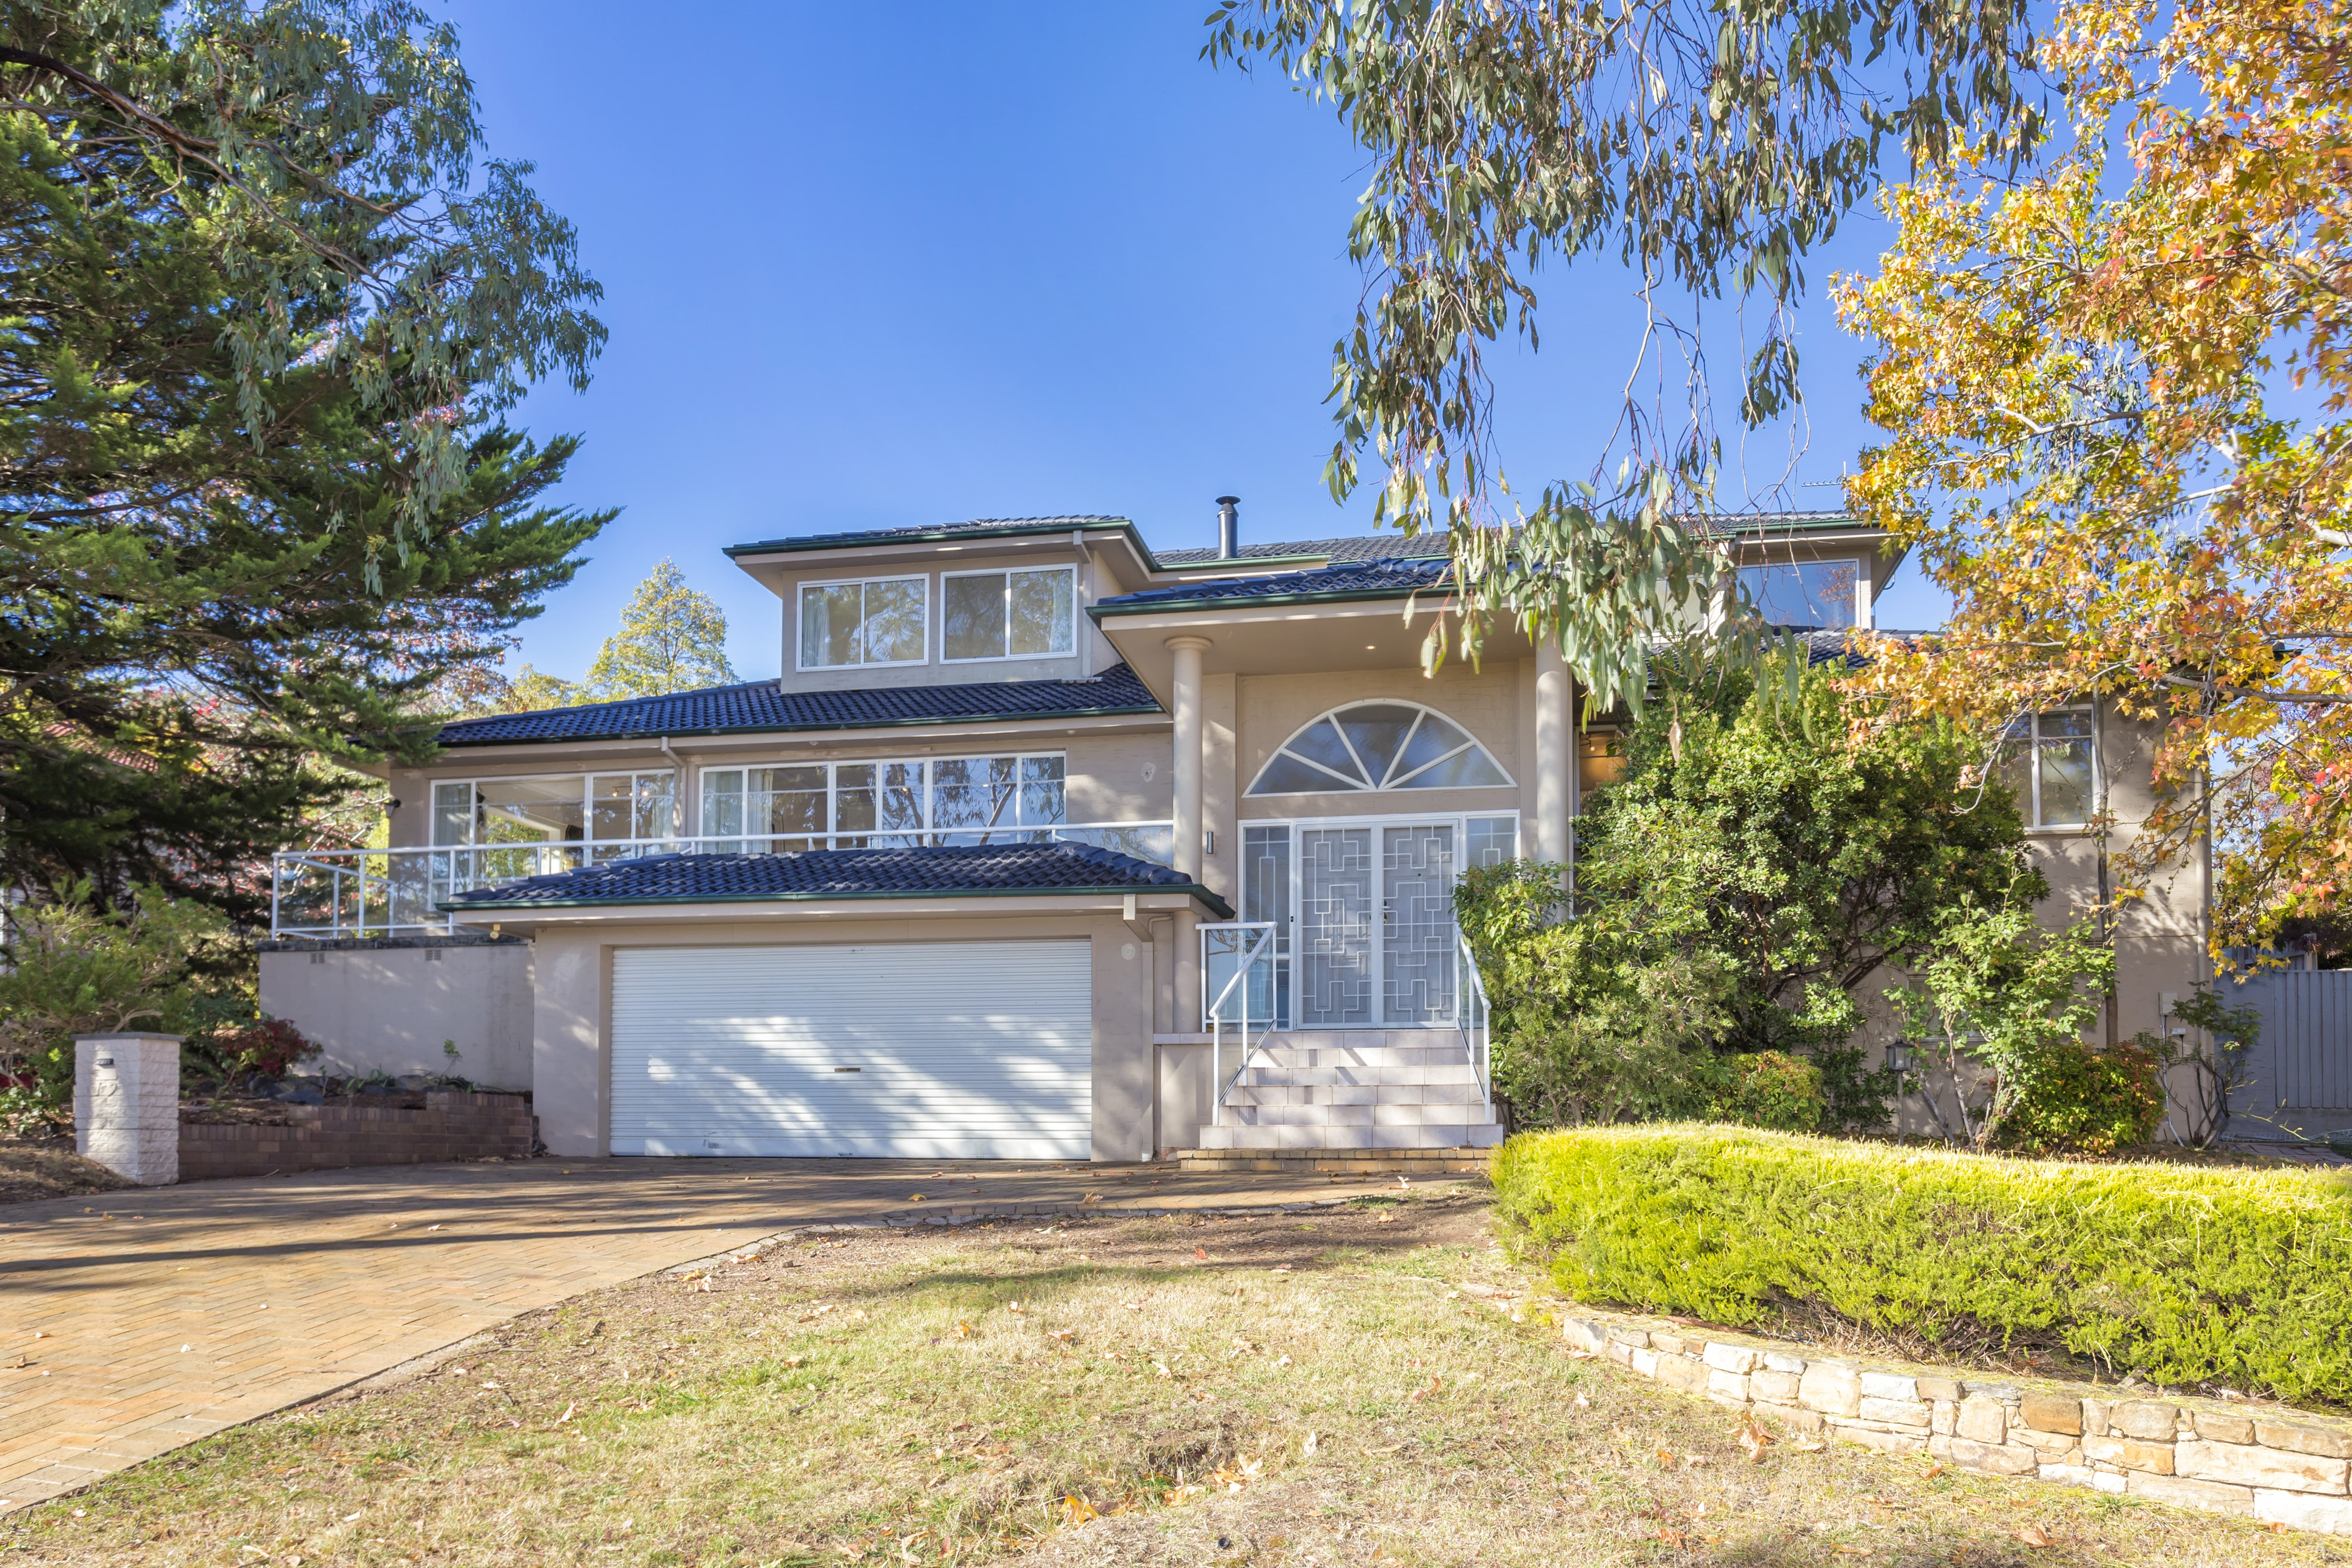 19 Curlewis Crescent Garran ACT 2605 House for Sale